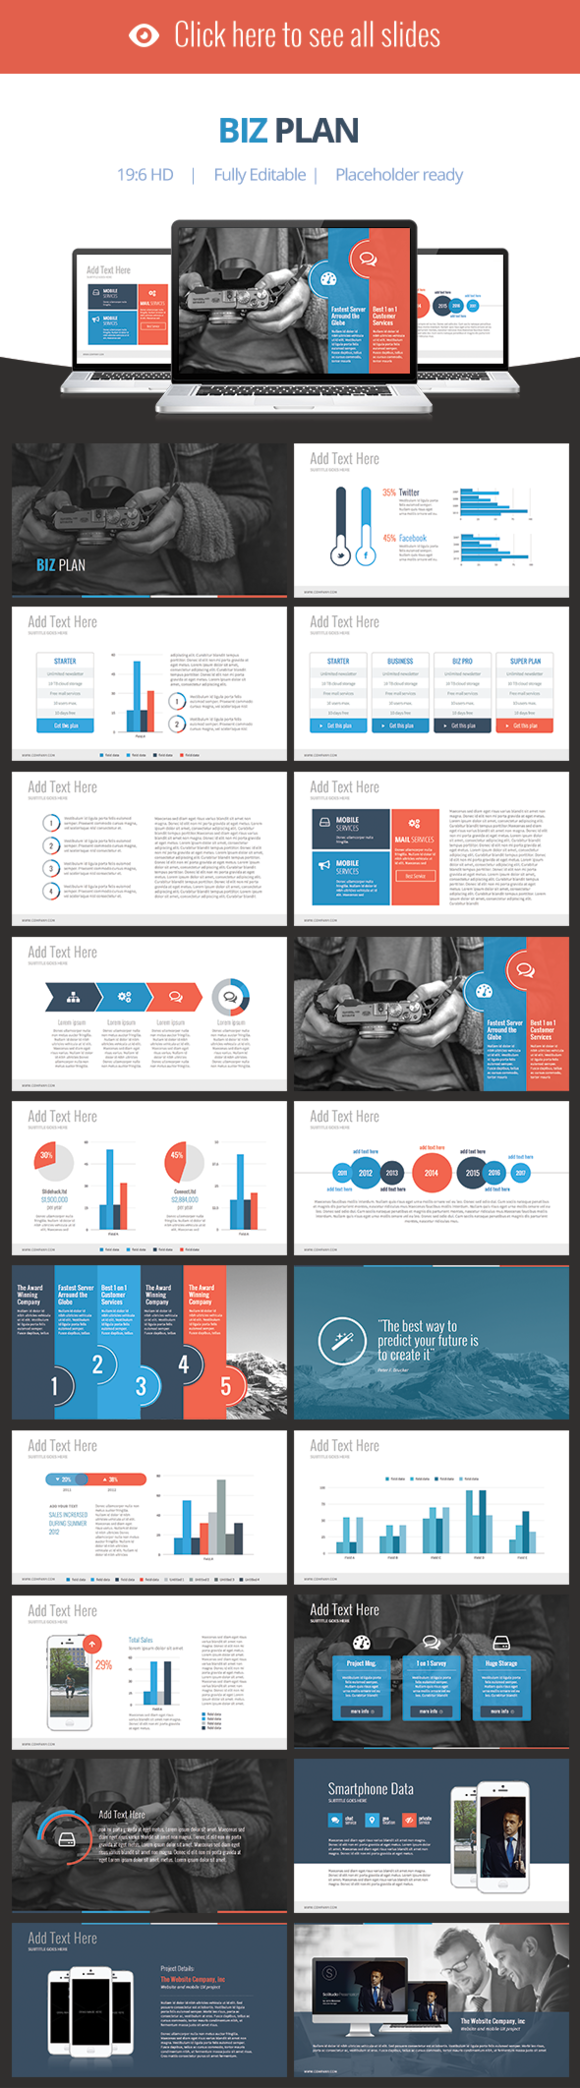 Biz Plan Keynote Template